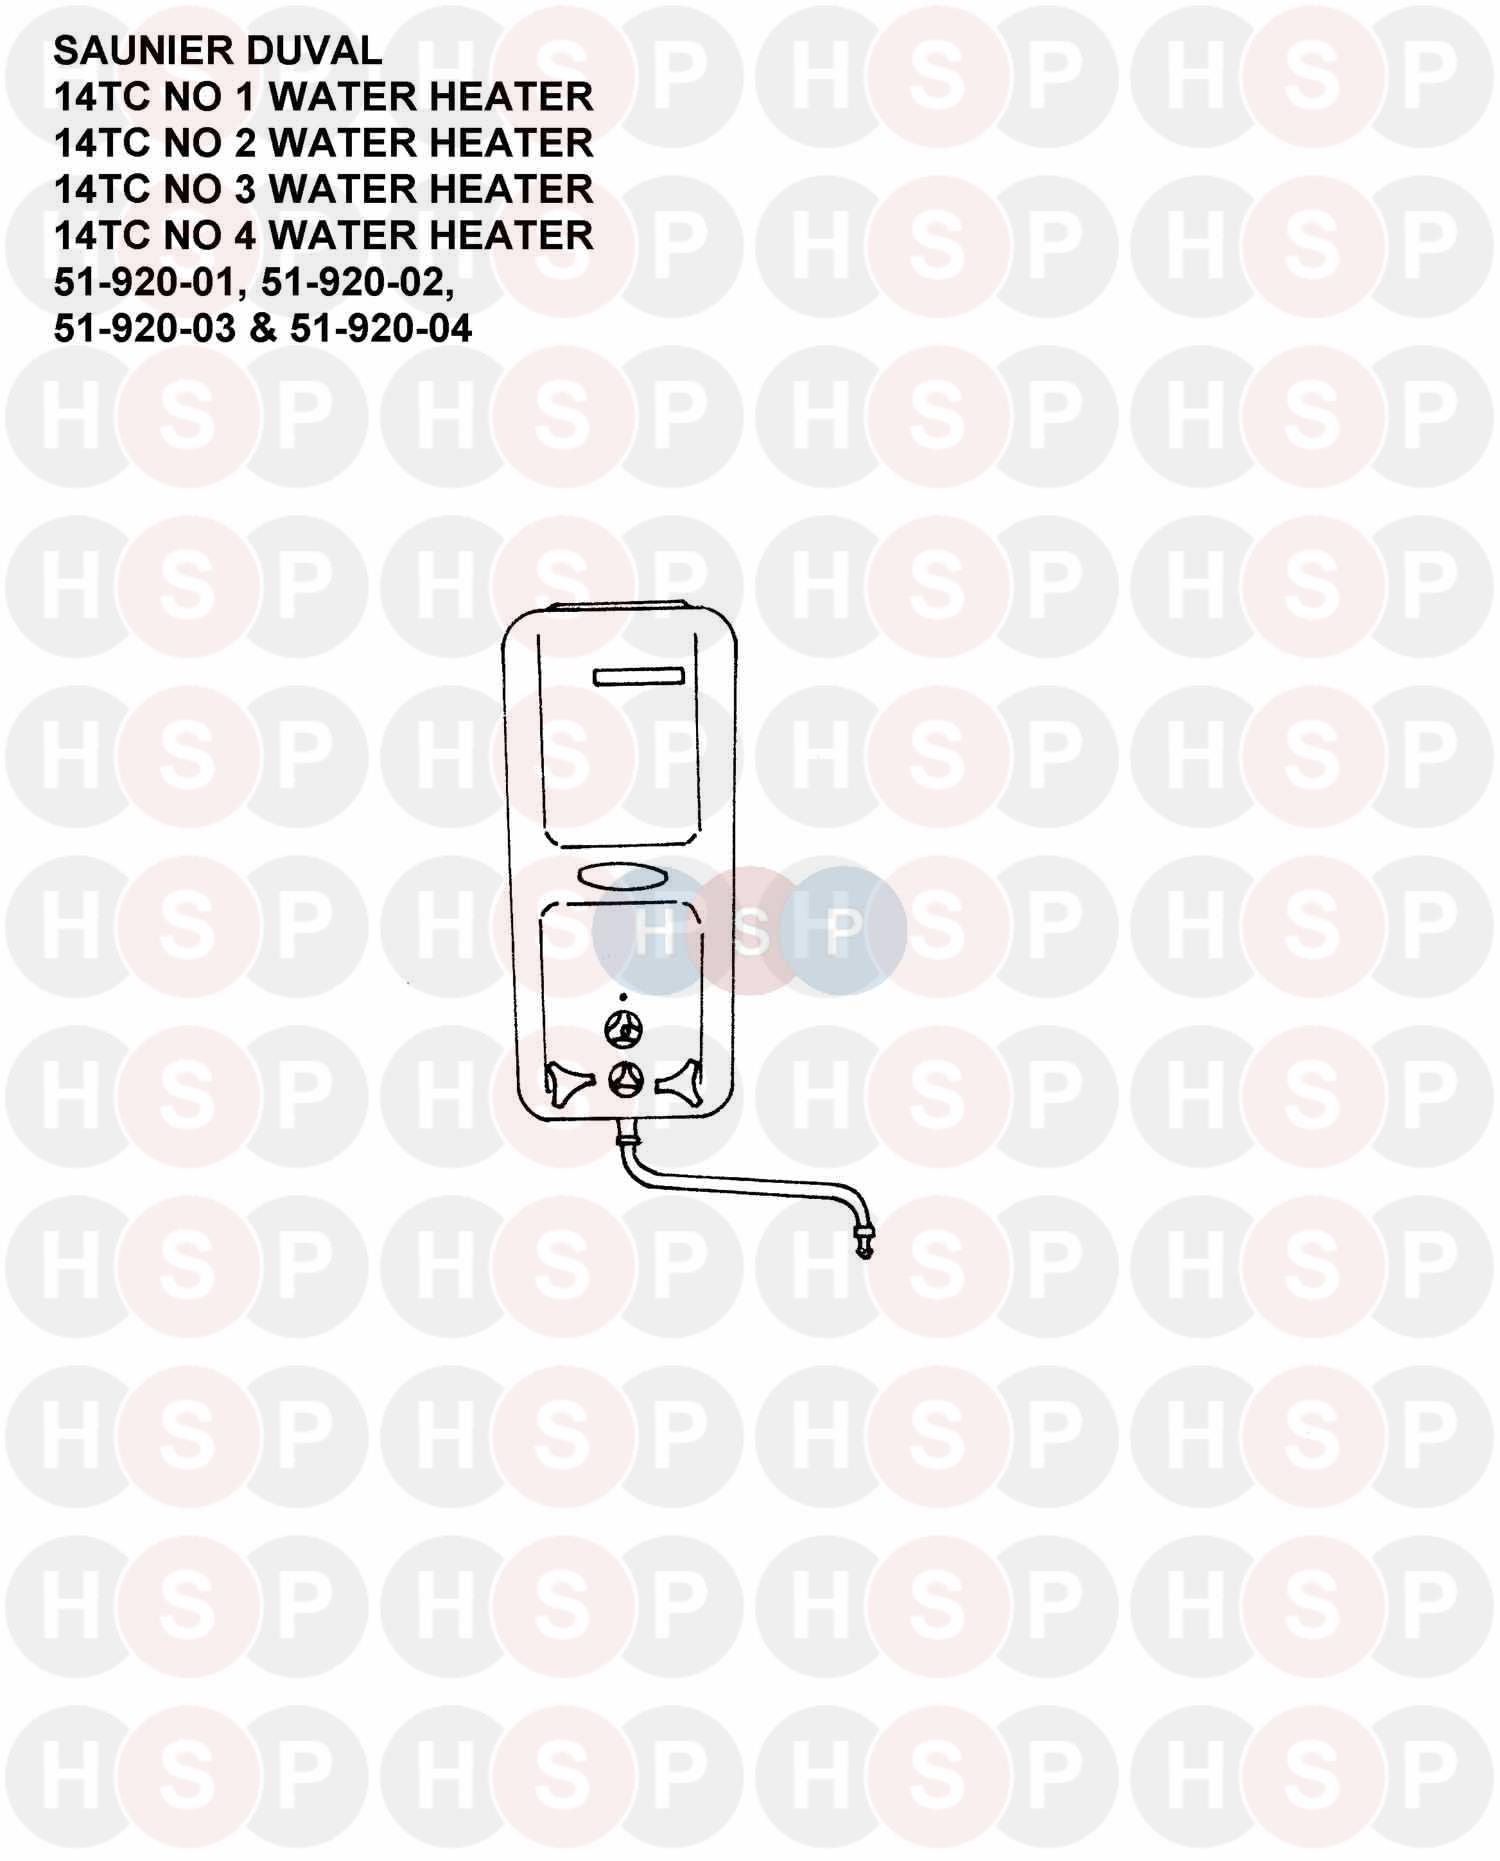 Saunier Duval 14TC NO 1 WATER HEATER (APPLIANCE OVERVIEW